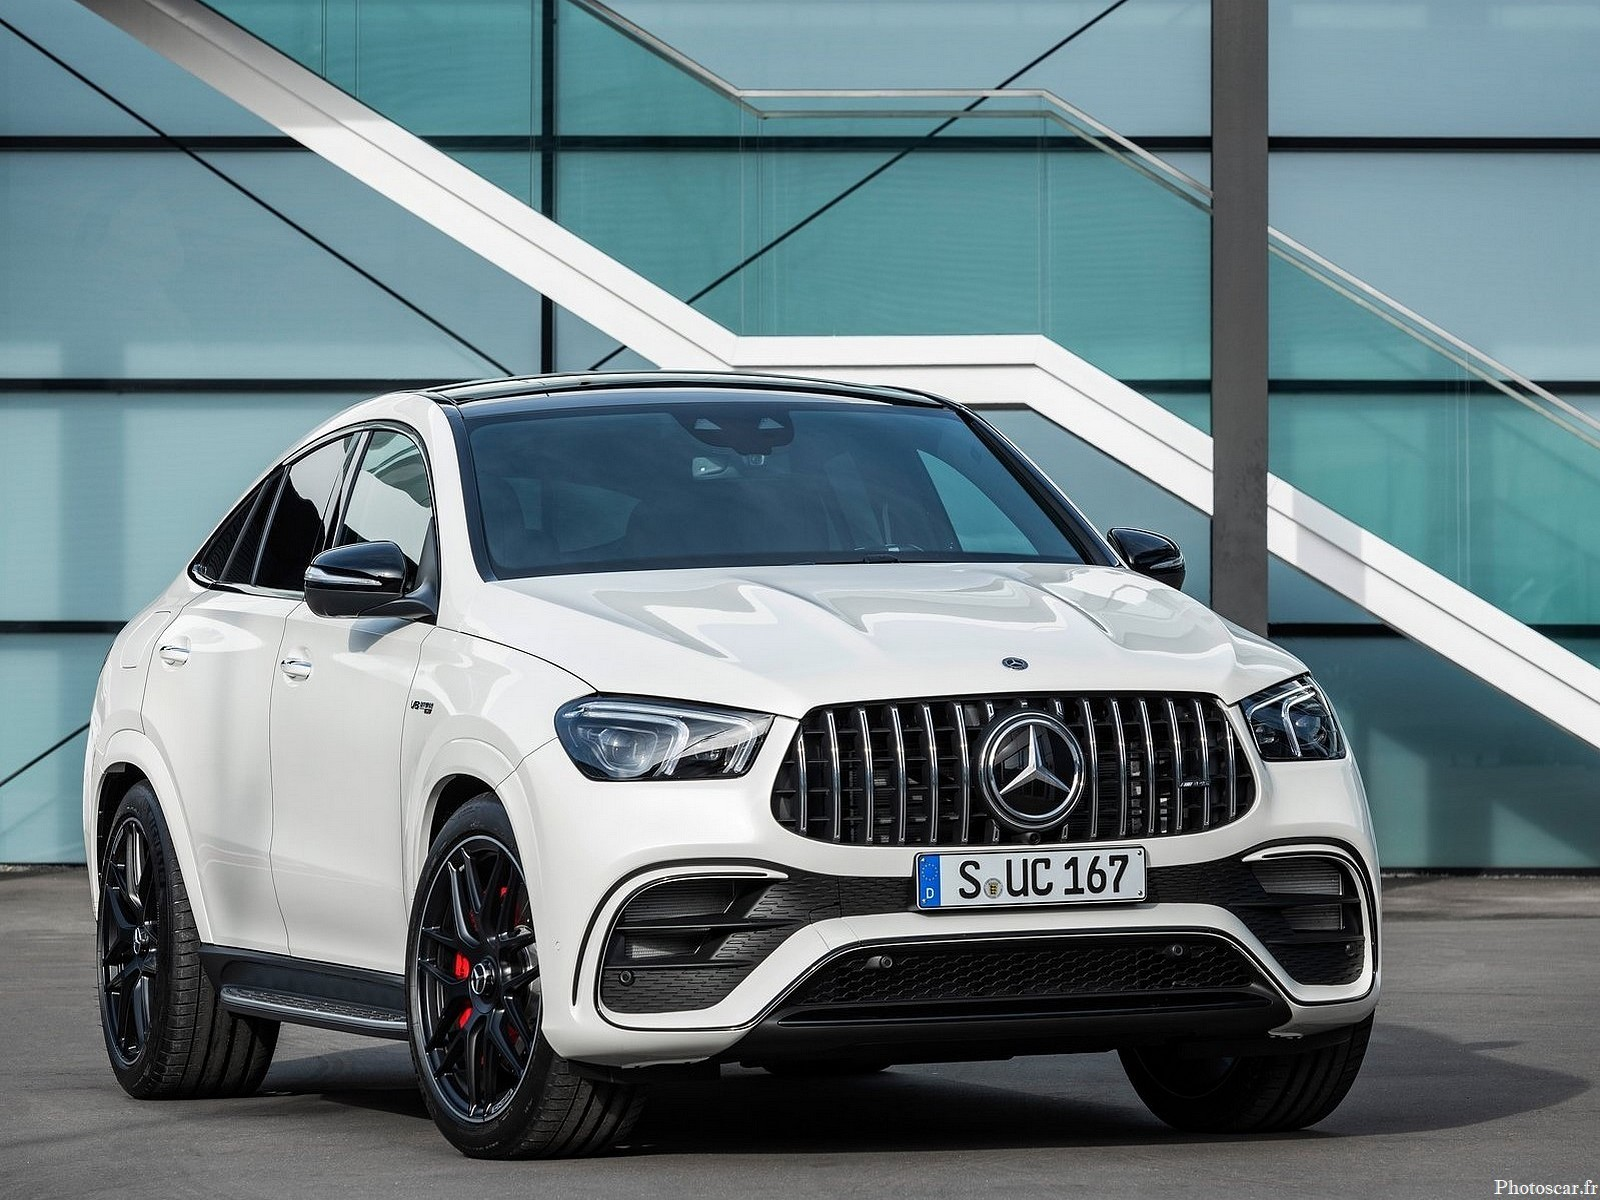 Mercedes Benz GLE63 S AMG Coupe 2021